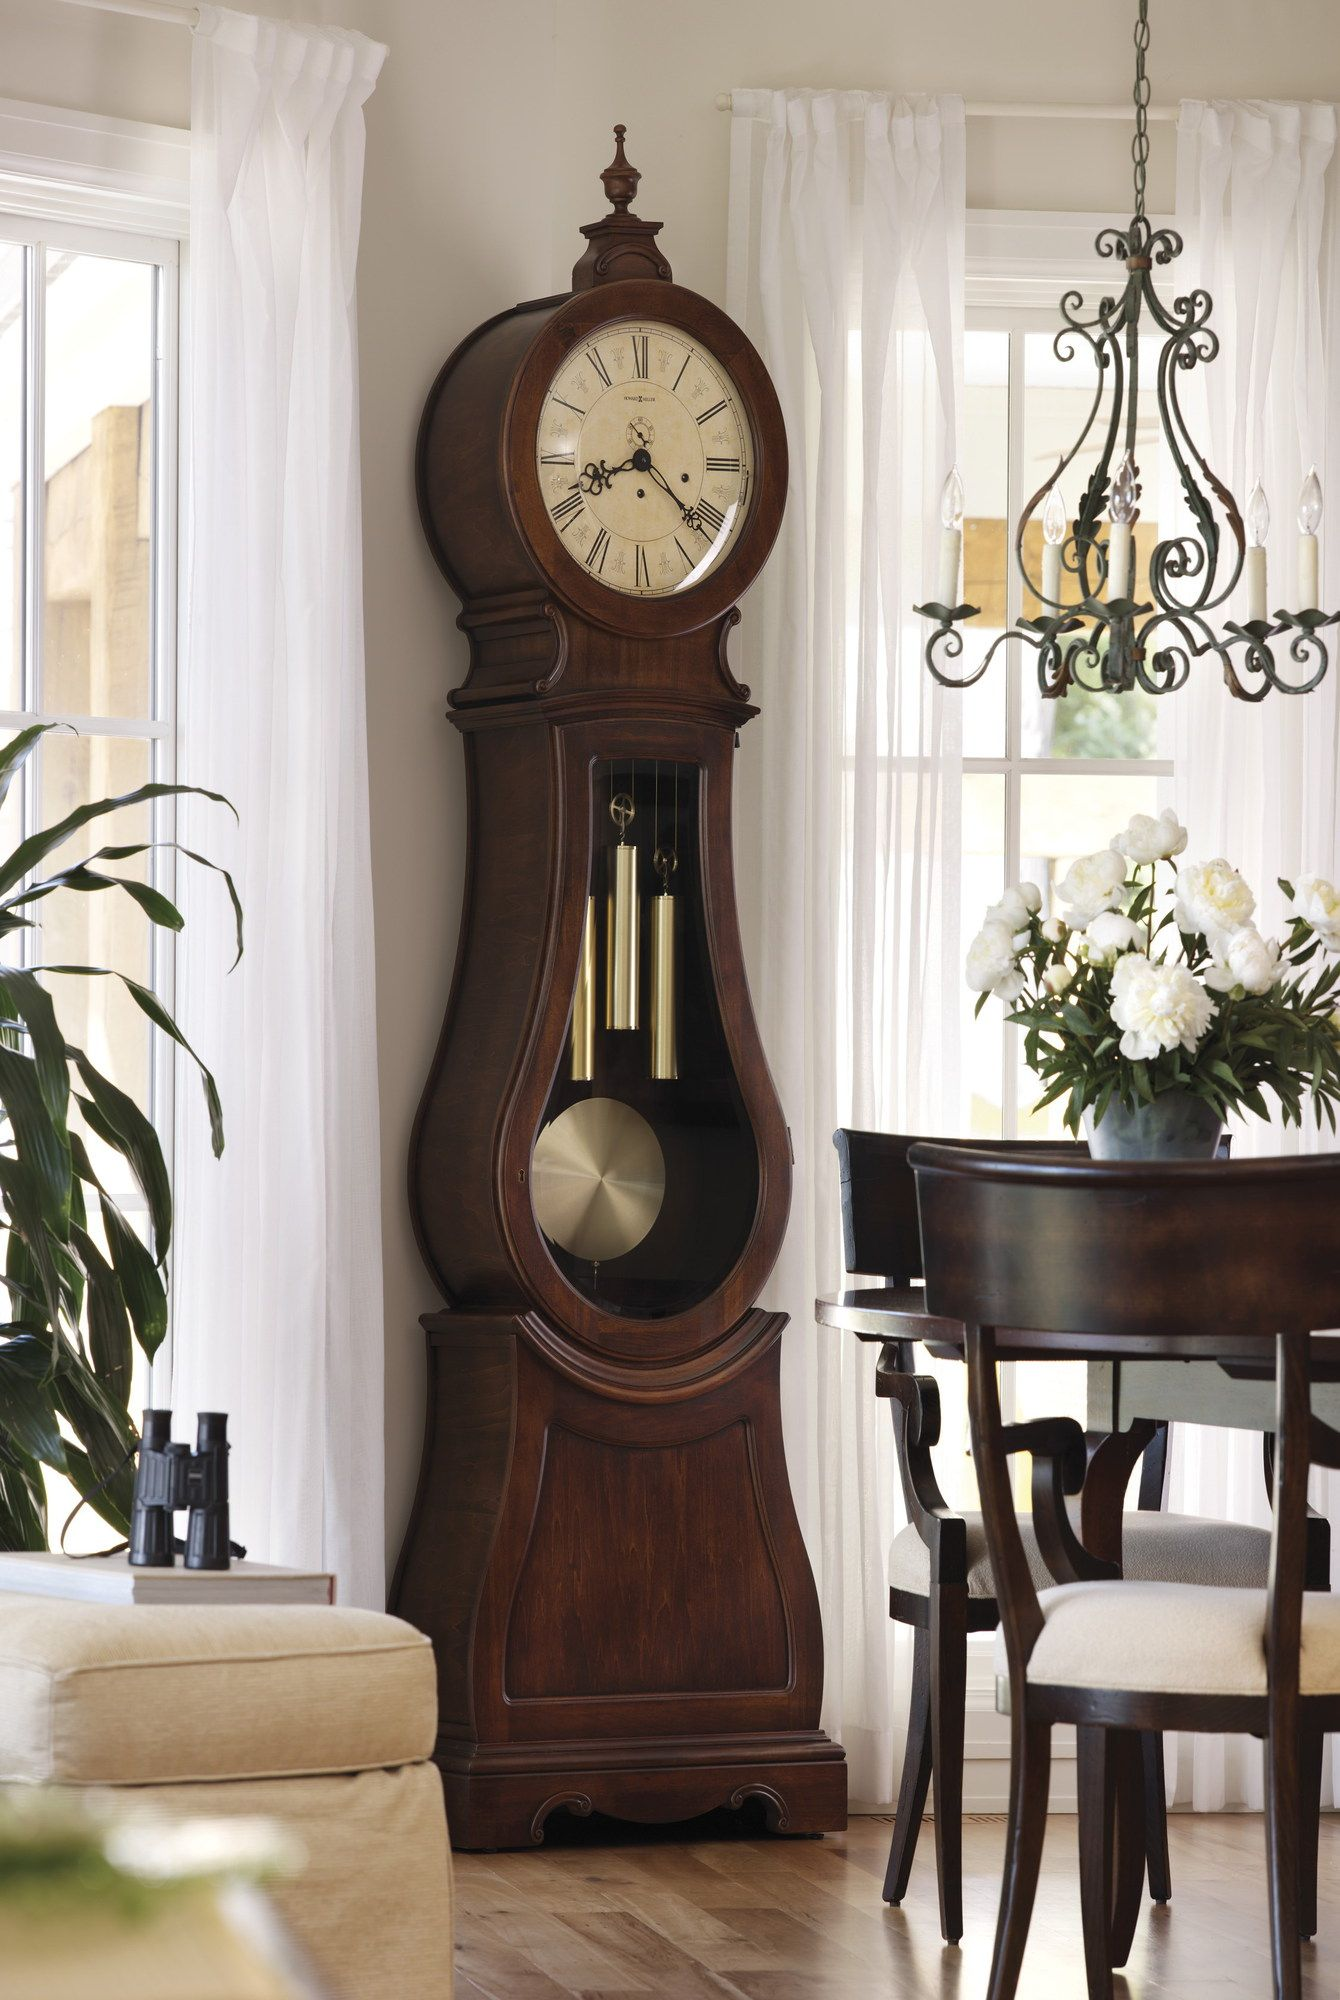 Love Grandfather Clocks Dislike The Color Would Prefer Lighter And Spire